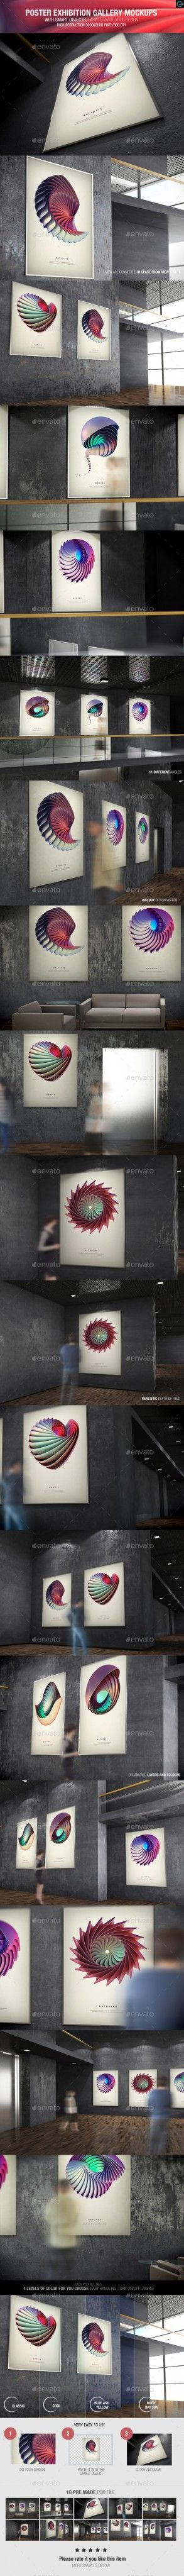 6 poster design photo mockups 57079 - Poster Exhibition Gallery Mockups Graphicriver